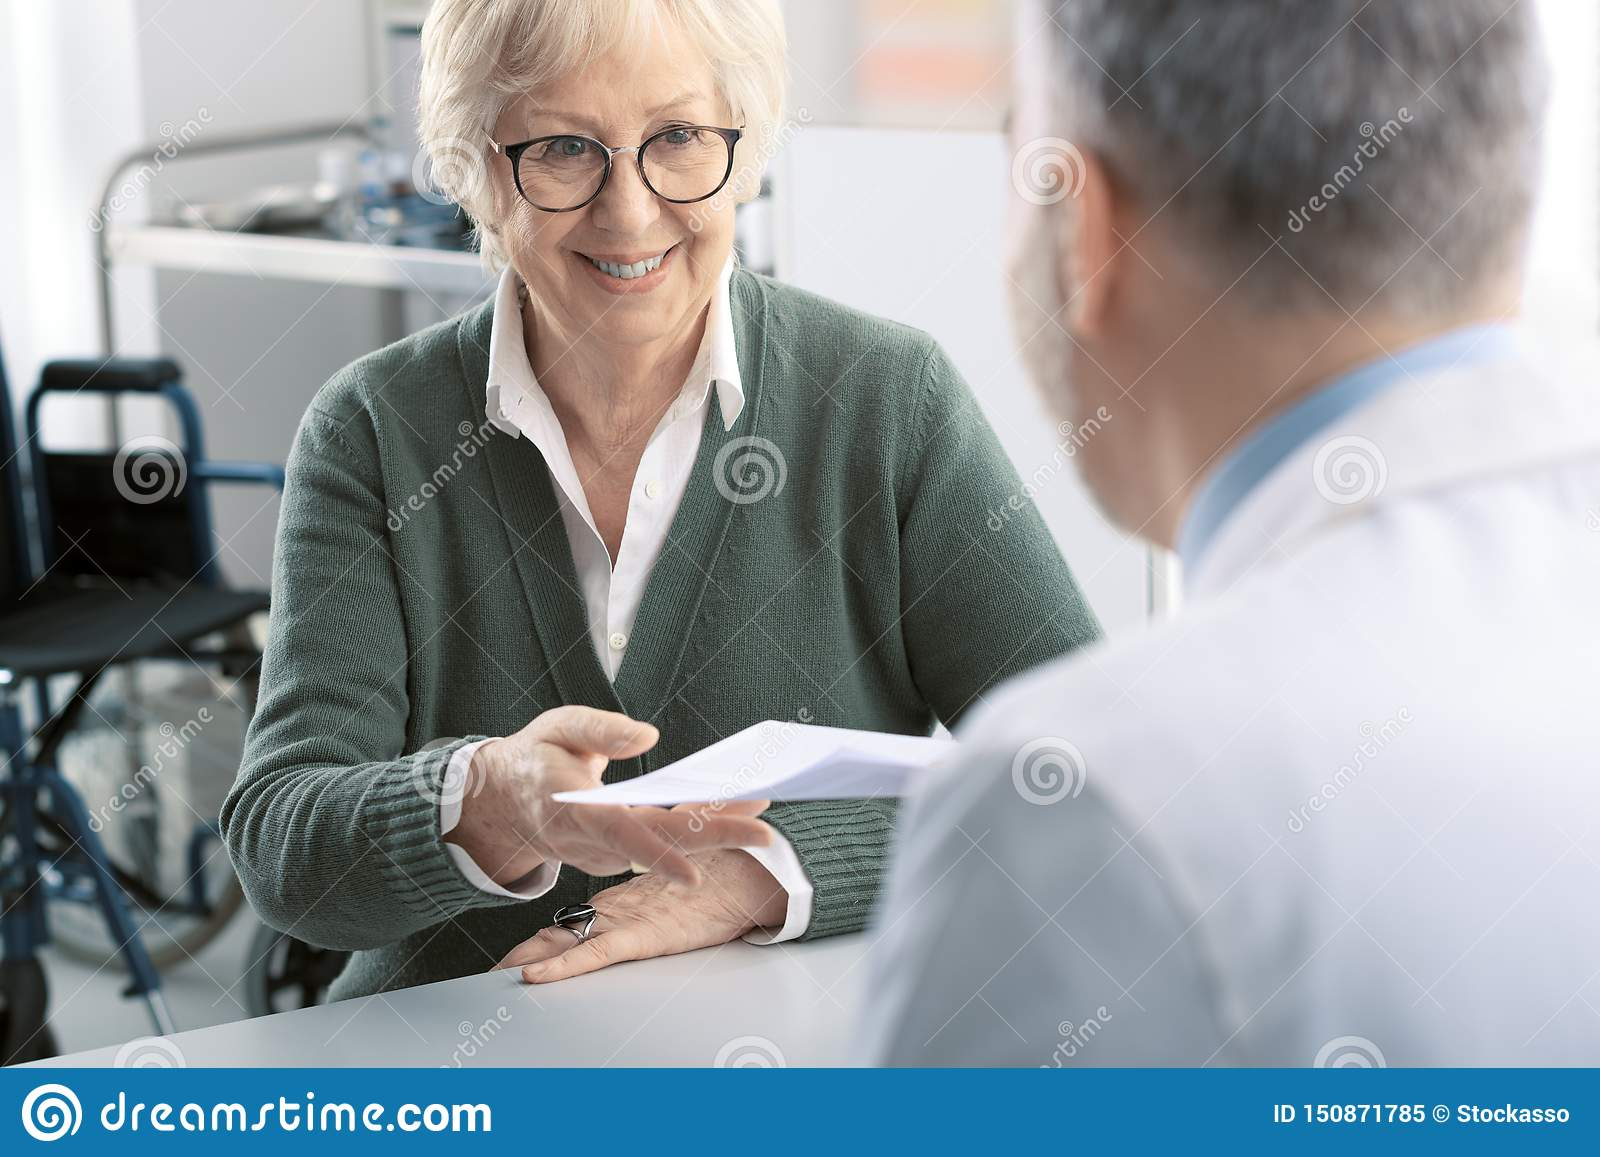 Professional doctor giving a prescription to a senior patient